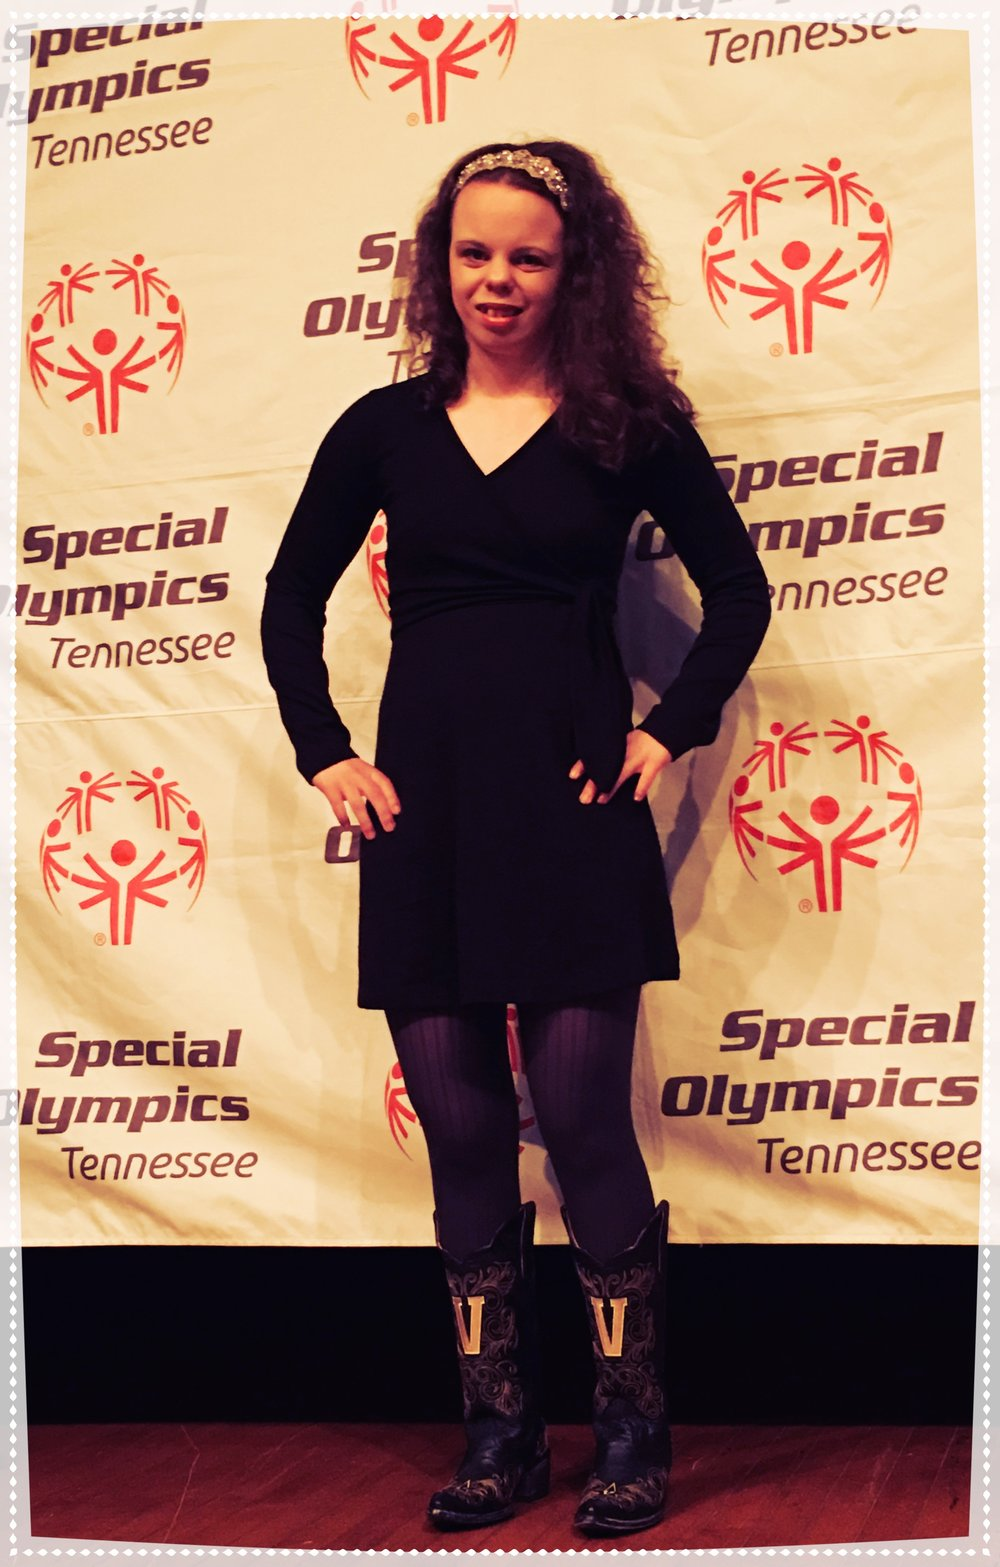 Representing Figure Skating for the great state of Tennessee!